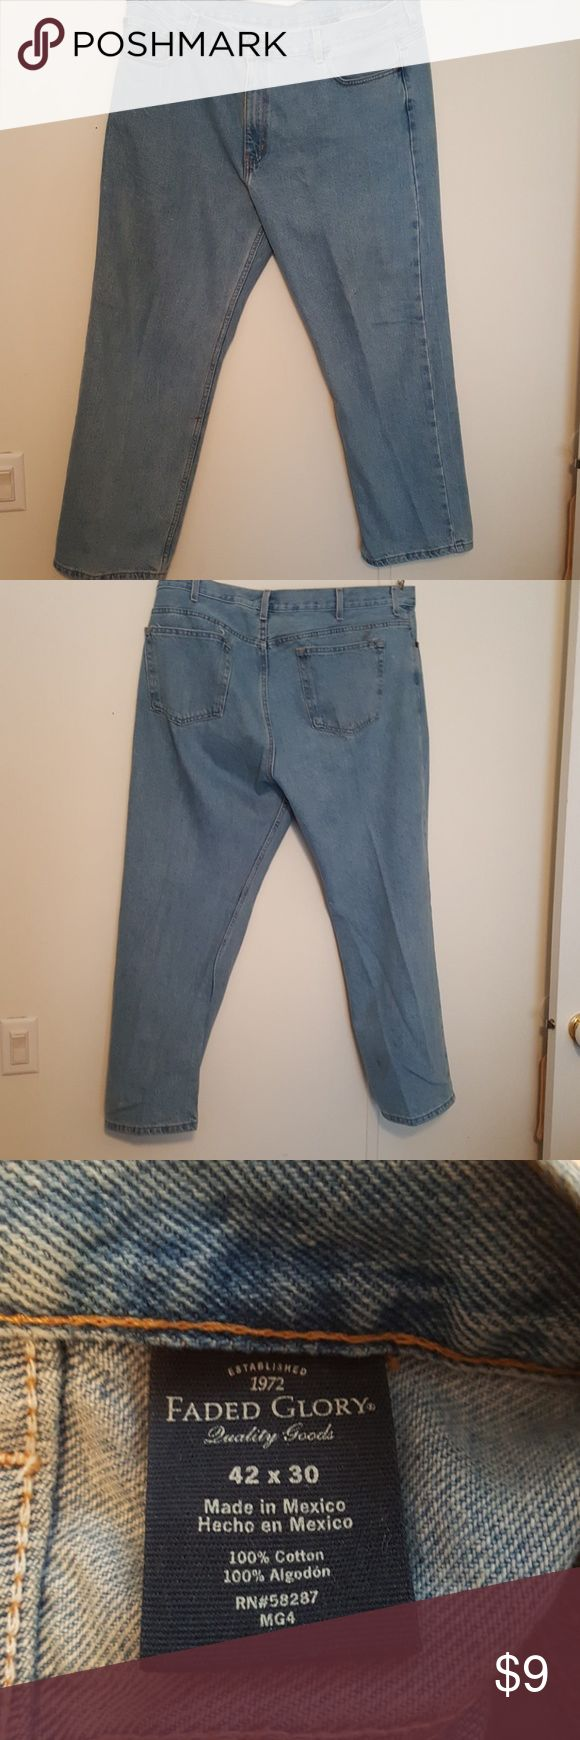 Faded Glory Jeans 42x30 Faded Glory Jeans 42x30 Faded Glory Jeans Straight